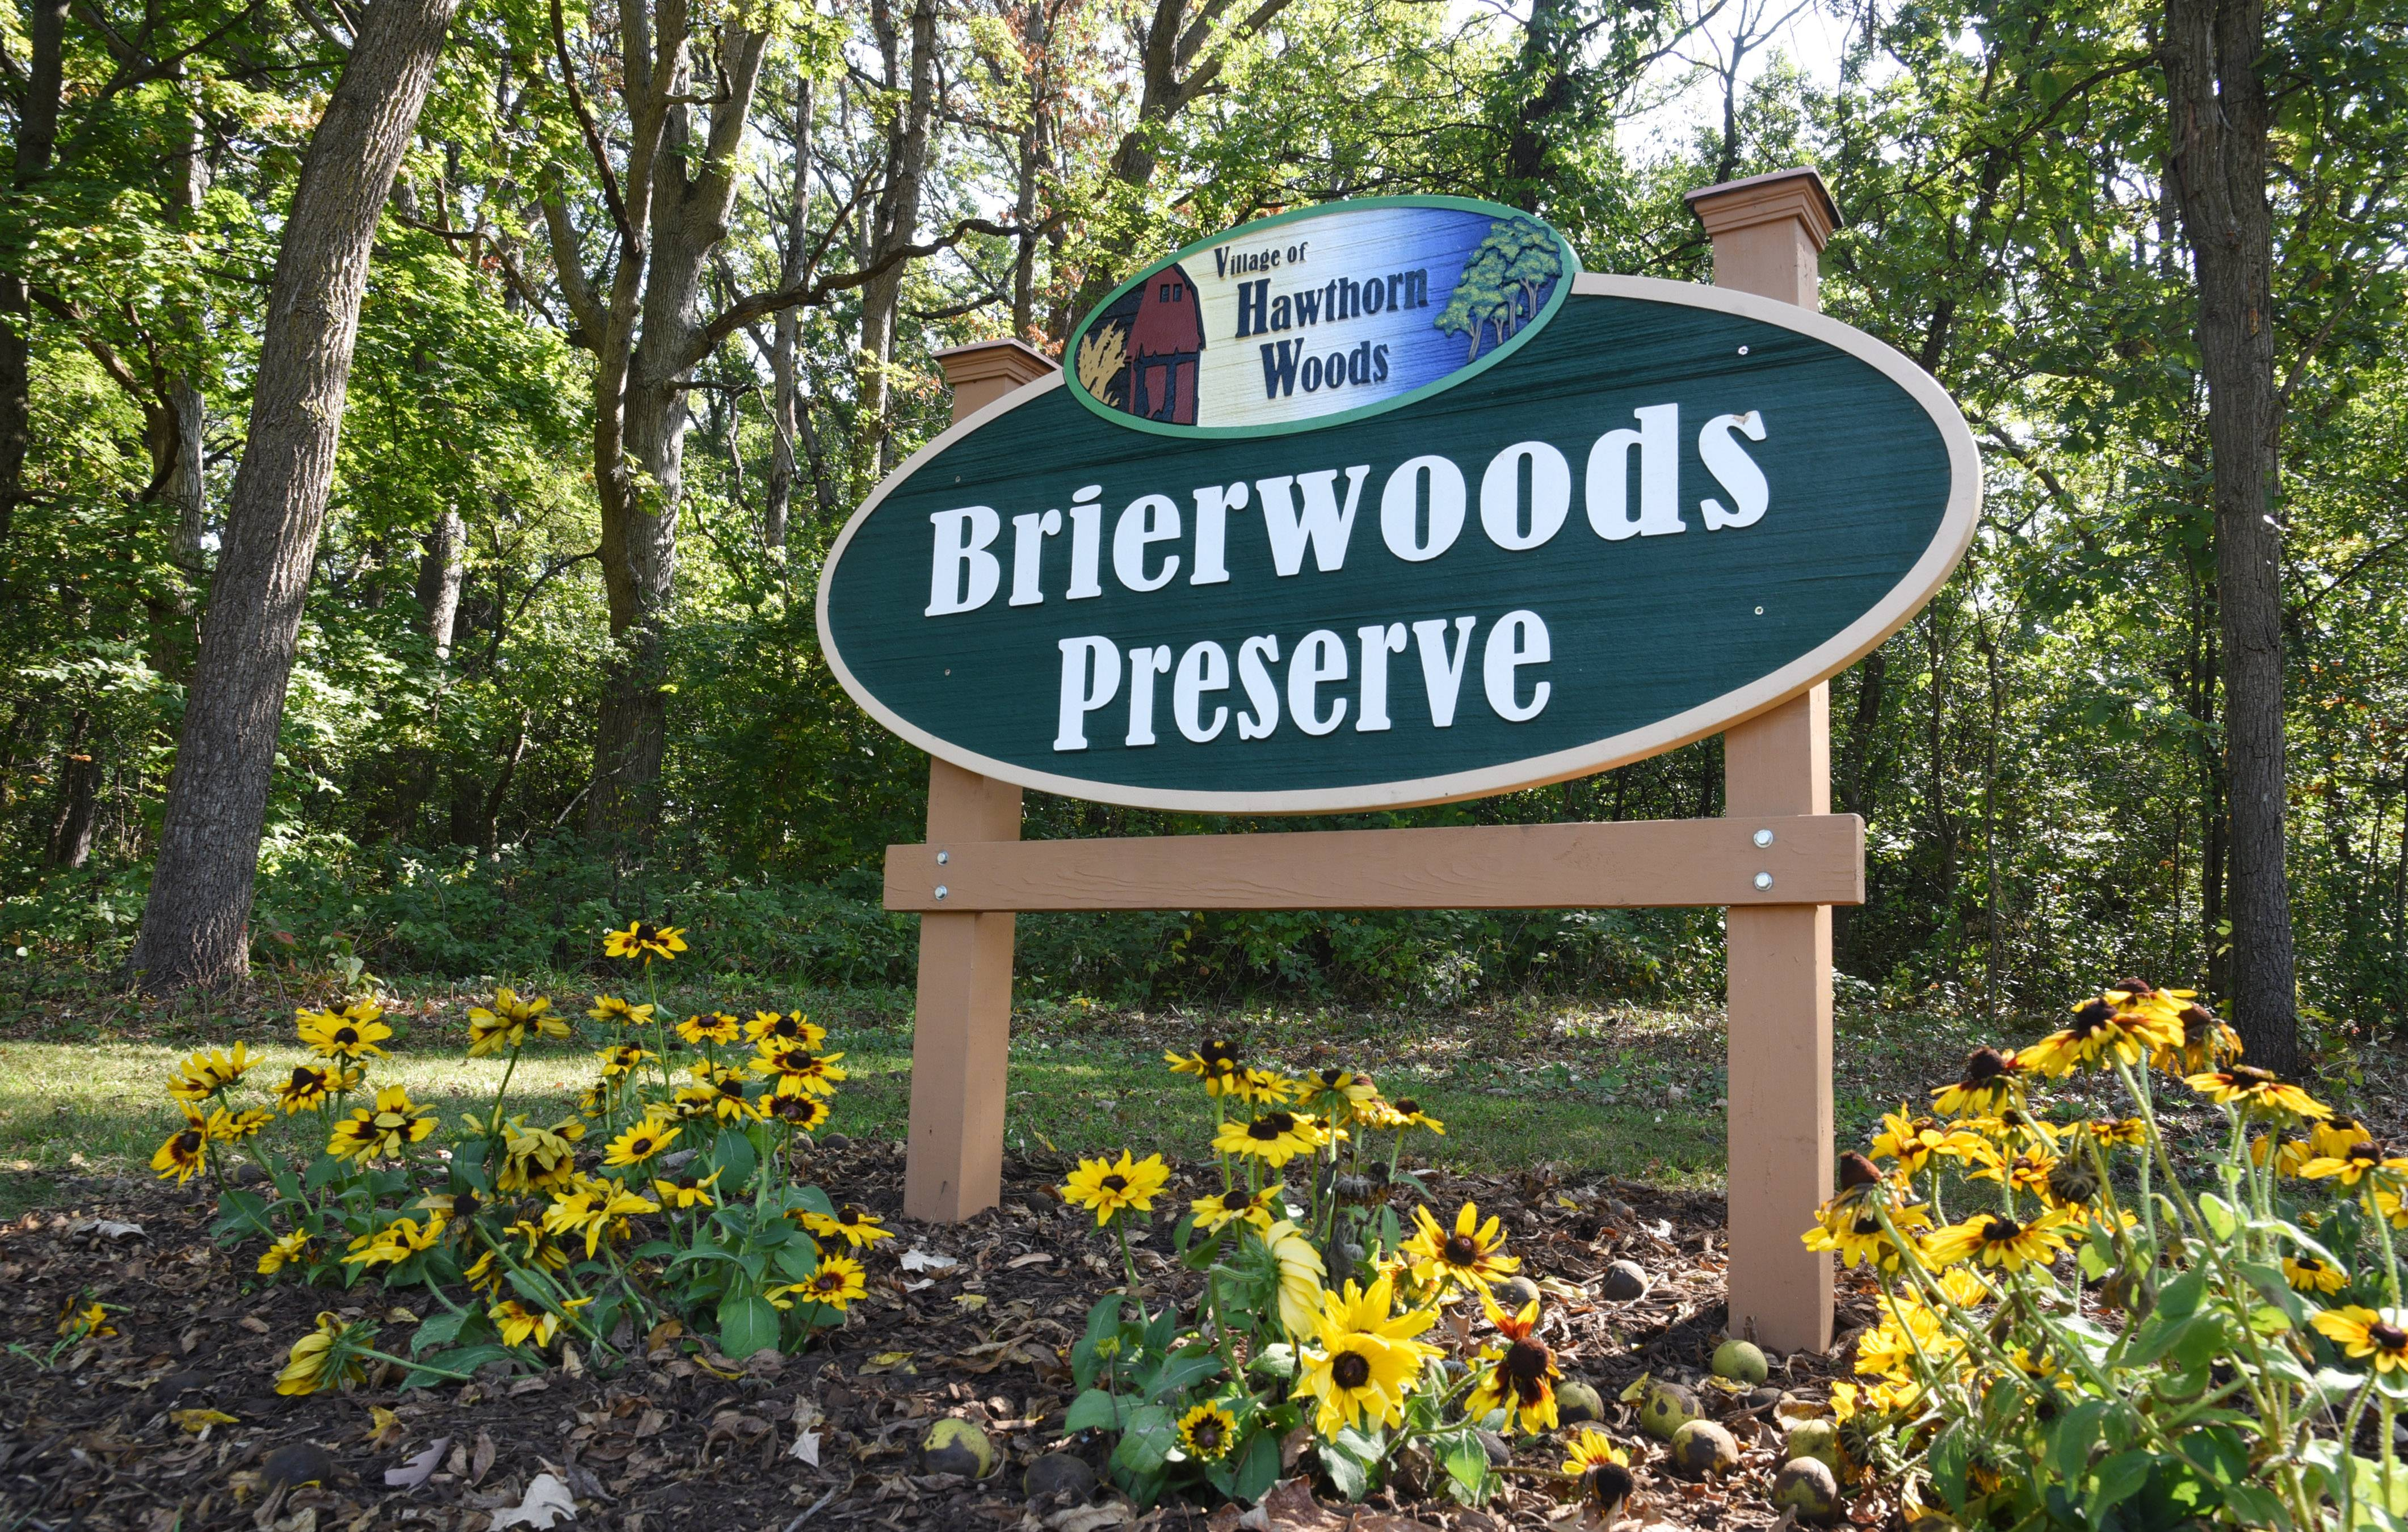 Hawthorn Woods officials will dedicate the Brierwoods Preserve on Friday. The village initially planned to create a monarch butterfly habitat on the site but discovered it was worth opening to the public at large.